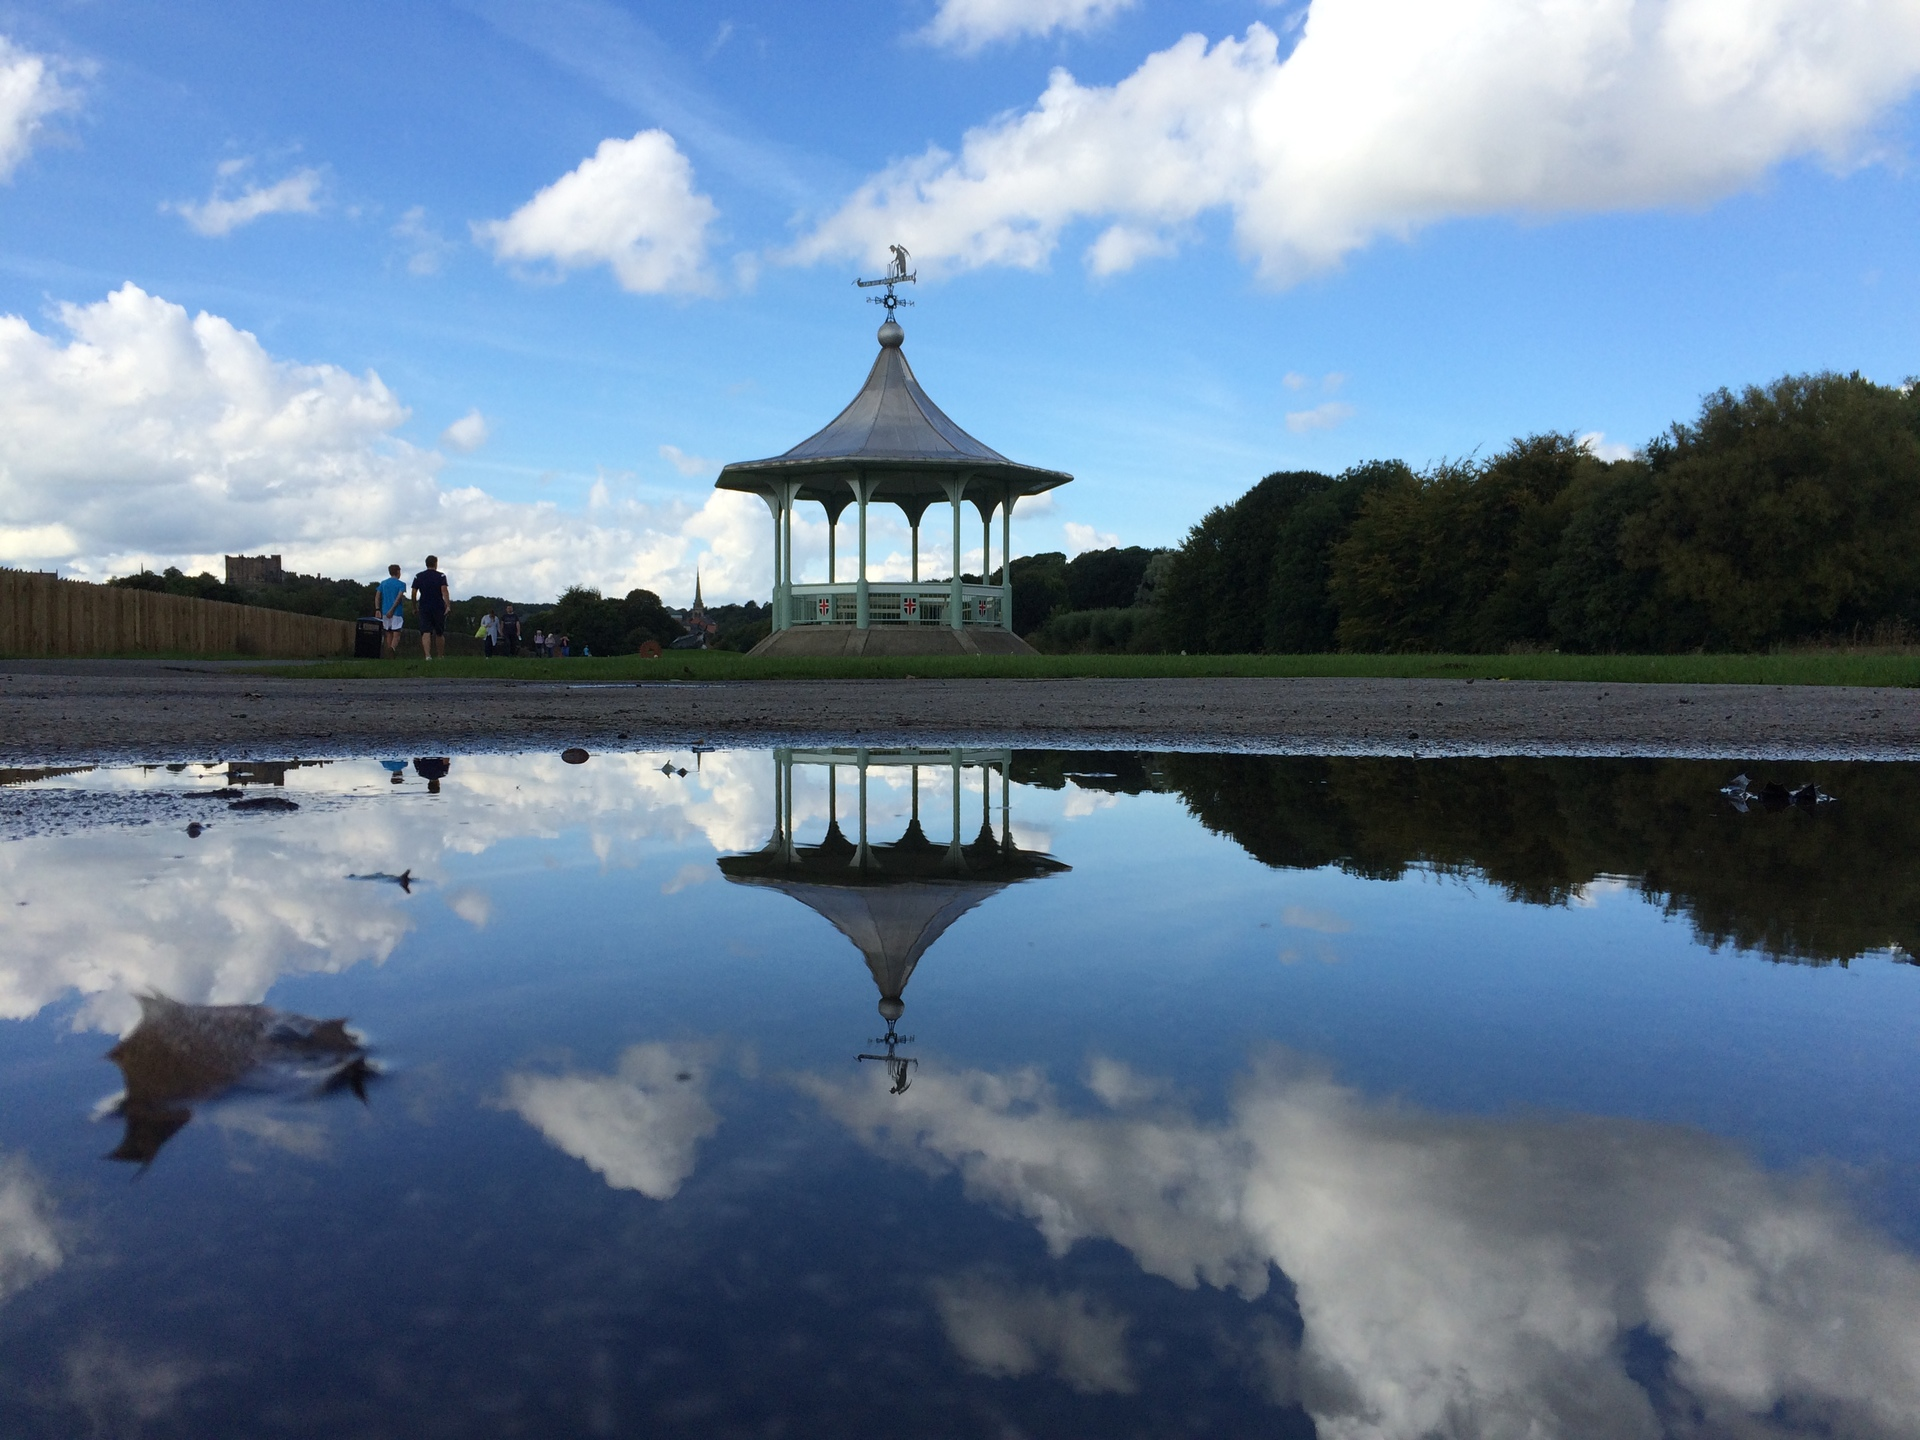 Durham Bandstand. Spotted a puddle with a lovely reflection opportunity ....